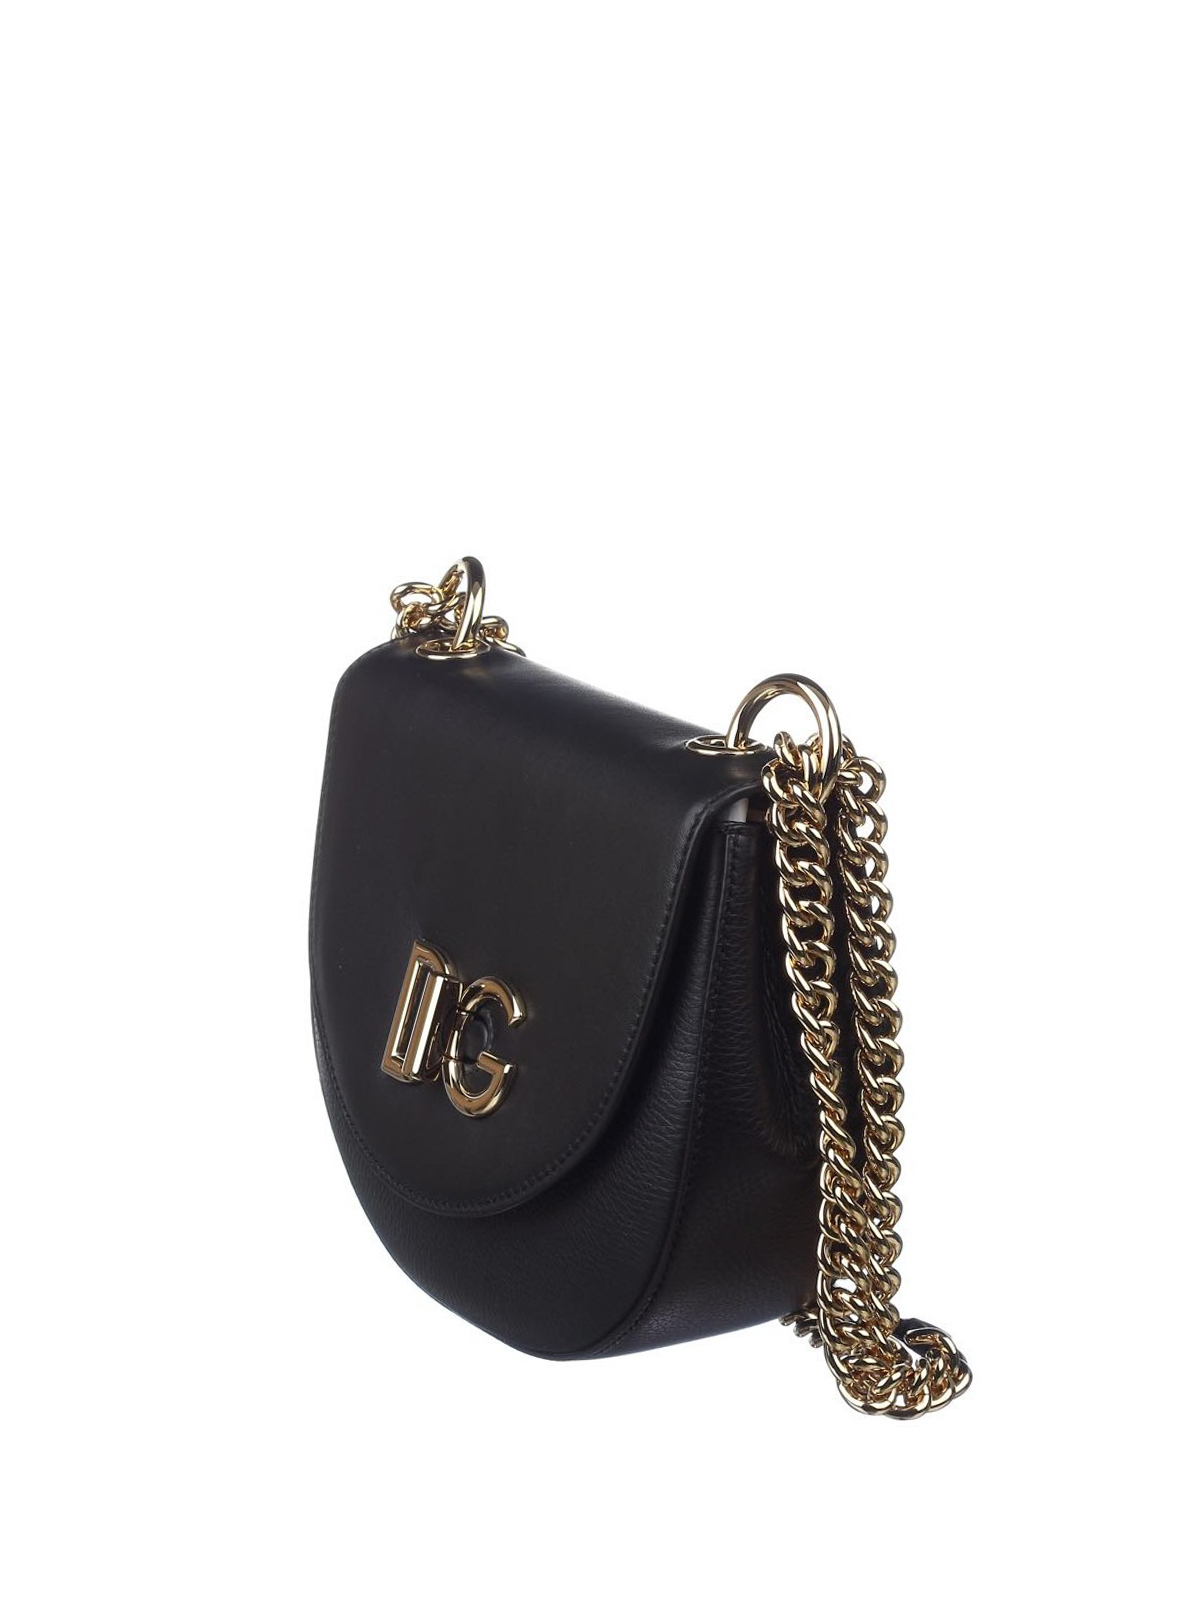 0ad29c4f60d3 DOLCE   GABBANA  cross body bags online - Wifi leather small bag